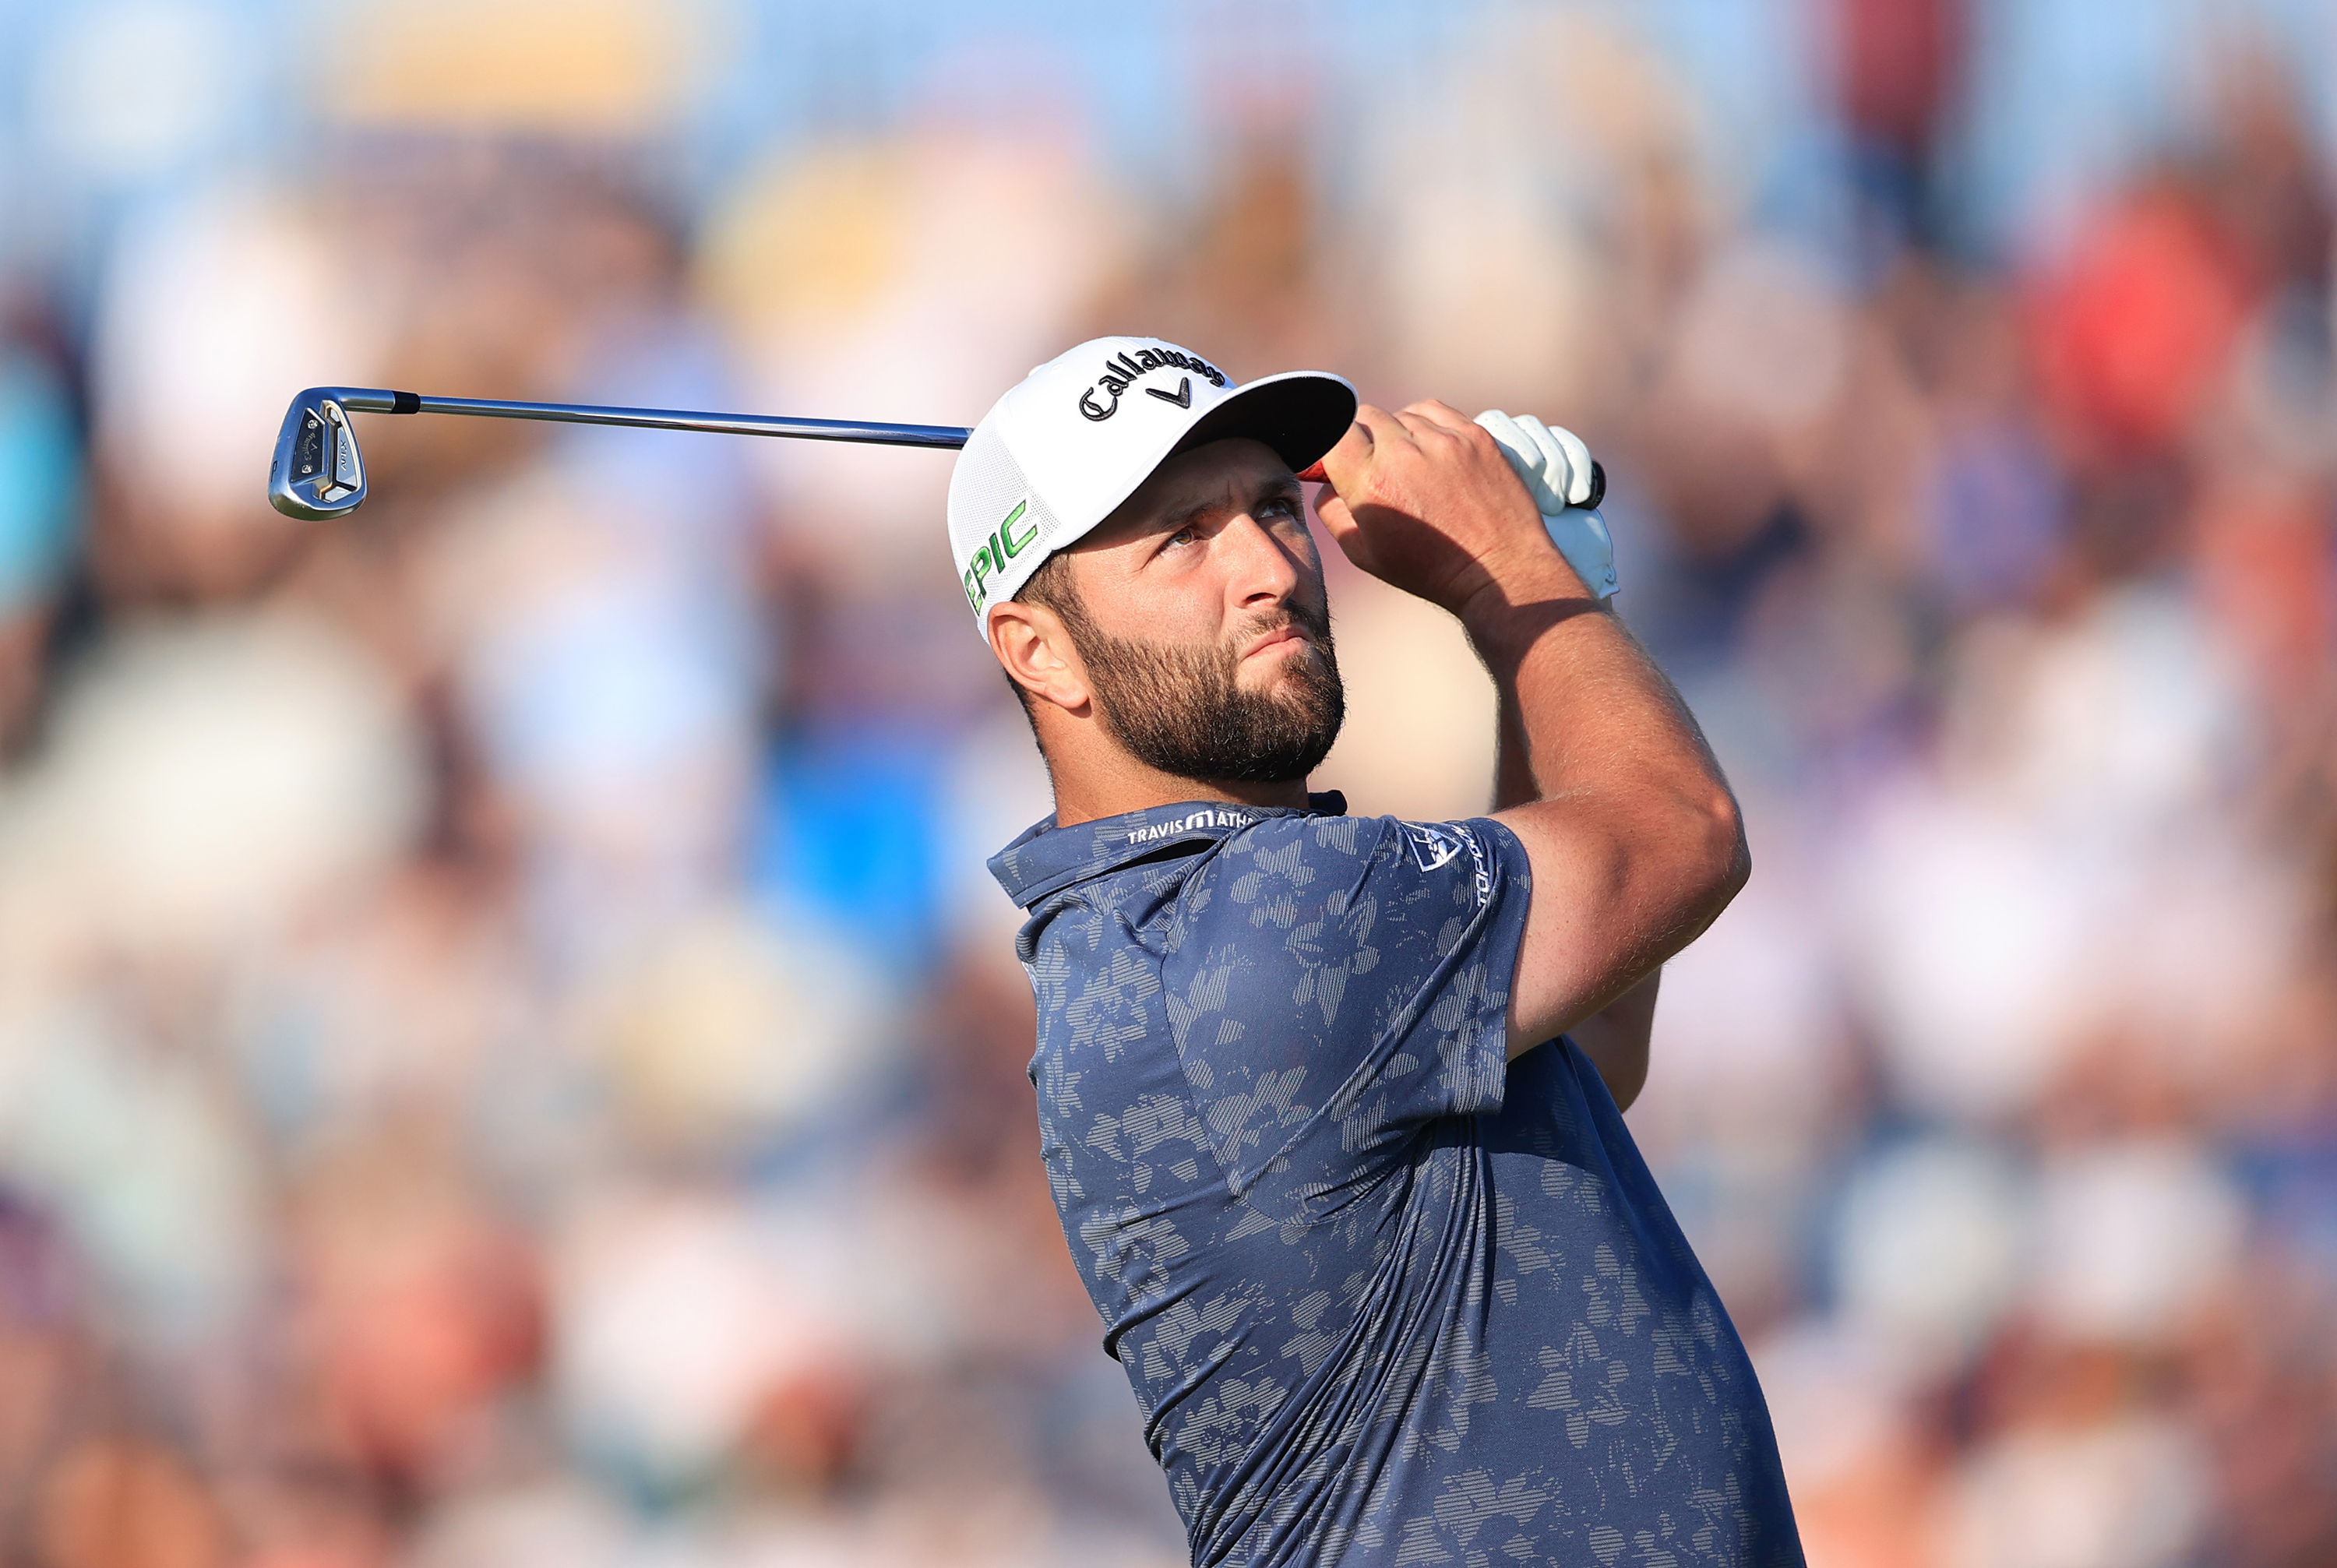 Jon Rahm tees off at the 149th Open at Royal St George's Golf Club on July 16, in Sandwich, England.